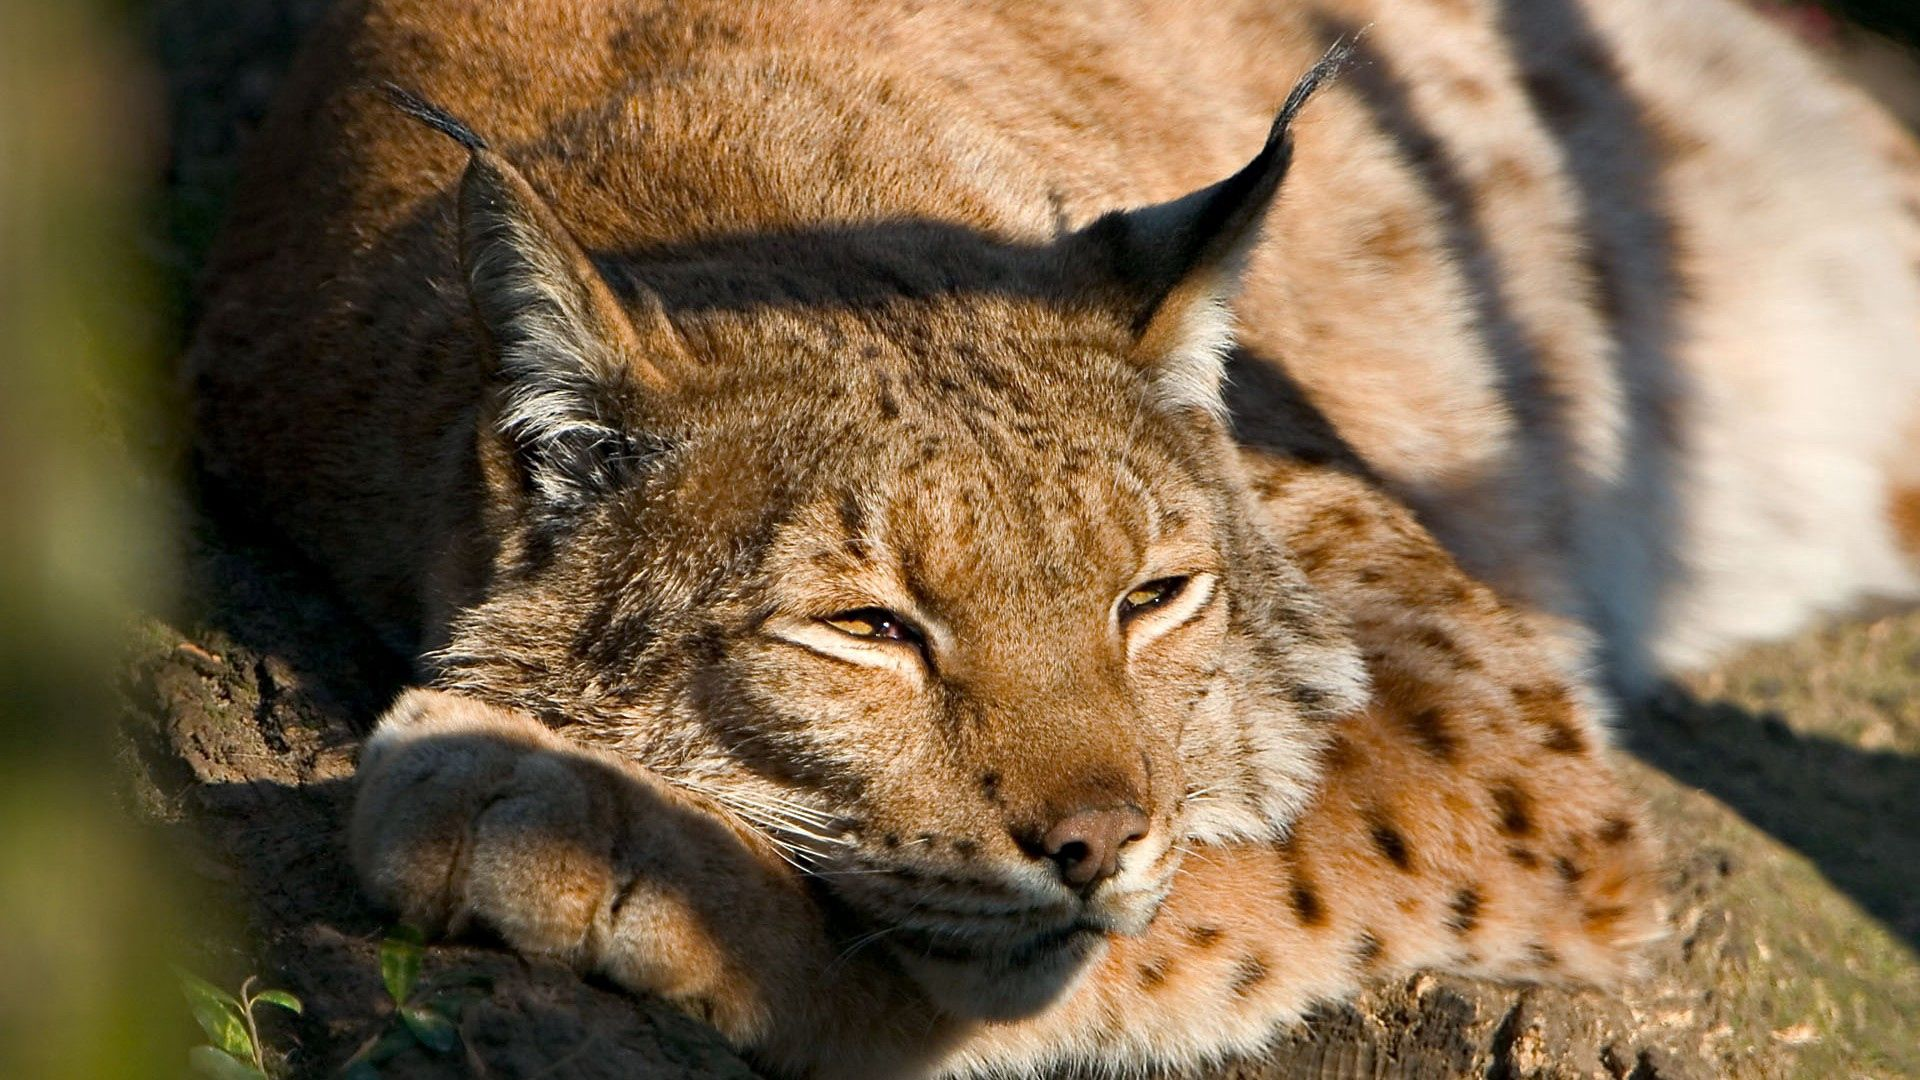 156289 download wallpaper Animals, Iris, Muzzle, Sleep, Dream, Nice, Sweetheart screensavers and pictures for free